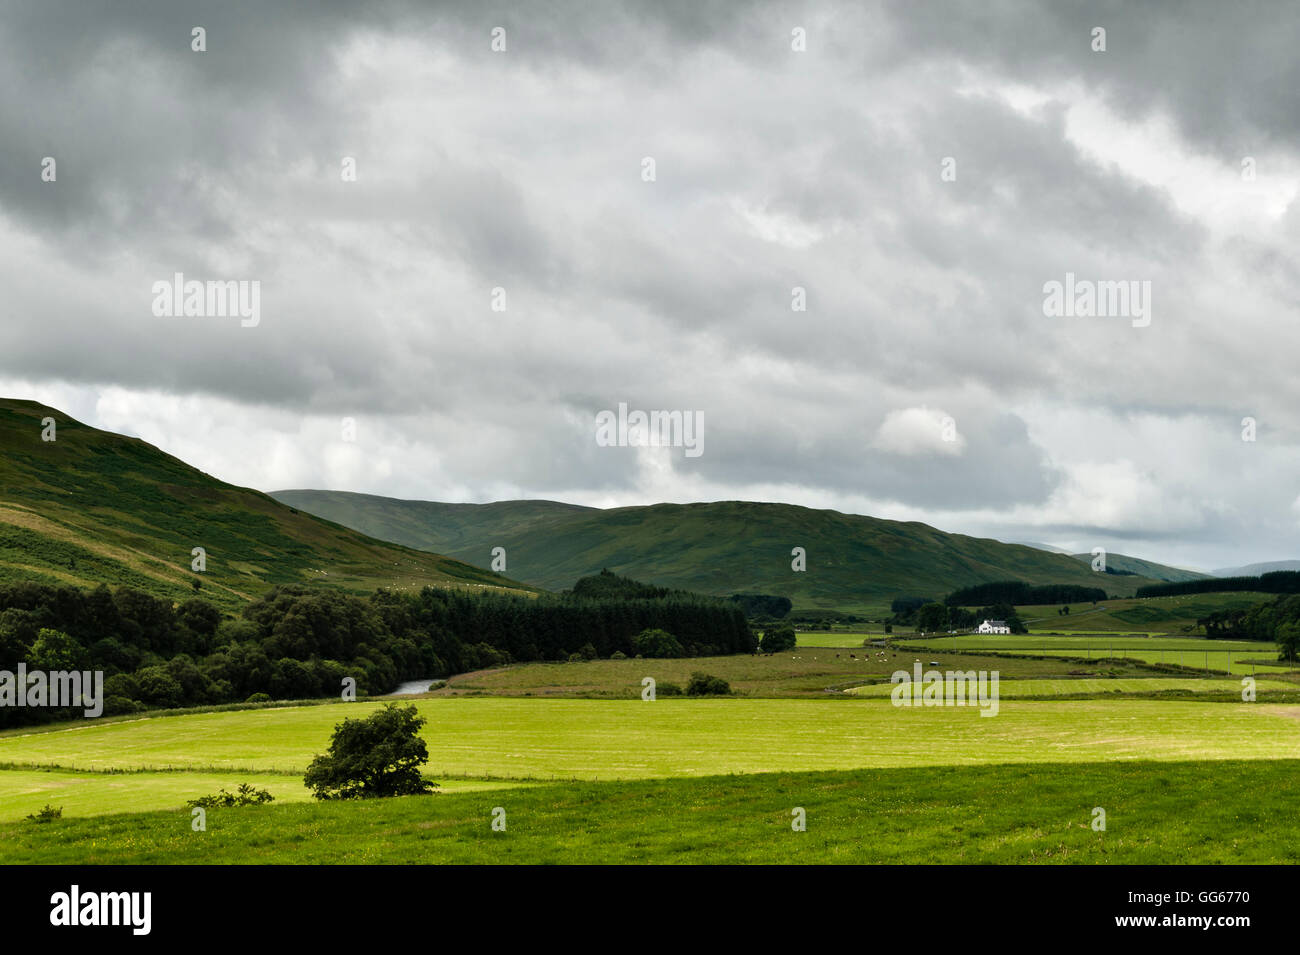 Scotland. The Yarrow Valley in the beautiful and remote Scottish Borders, with the Gordon Arms Hotel in the distance - Stock Image